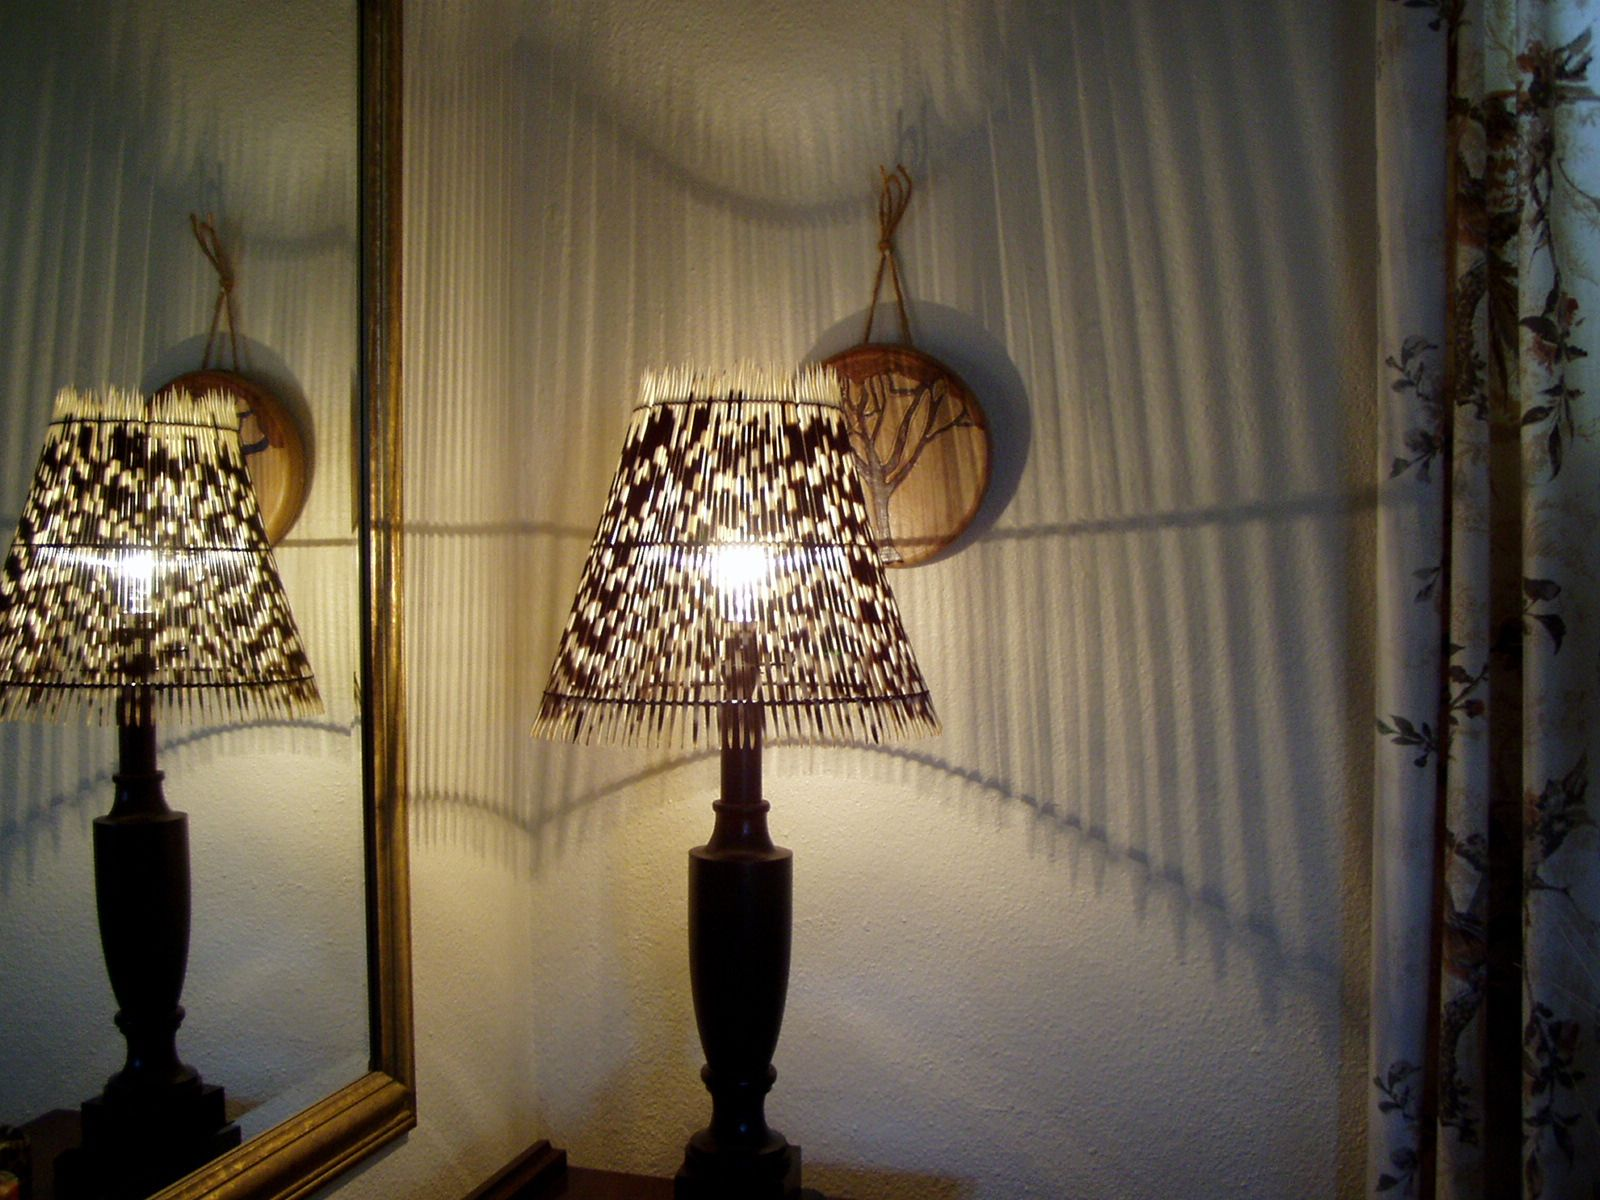 Lights & porcupine quill lampshade - so cooL! | African Style and Decor ... azcodes.com